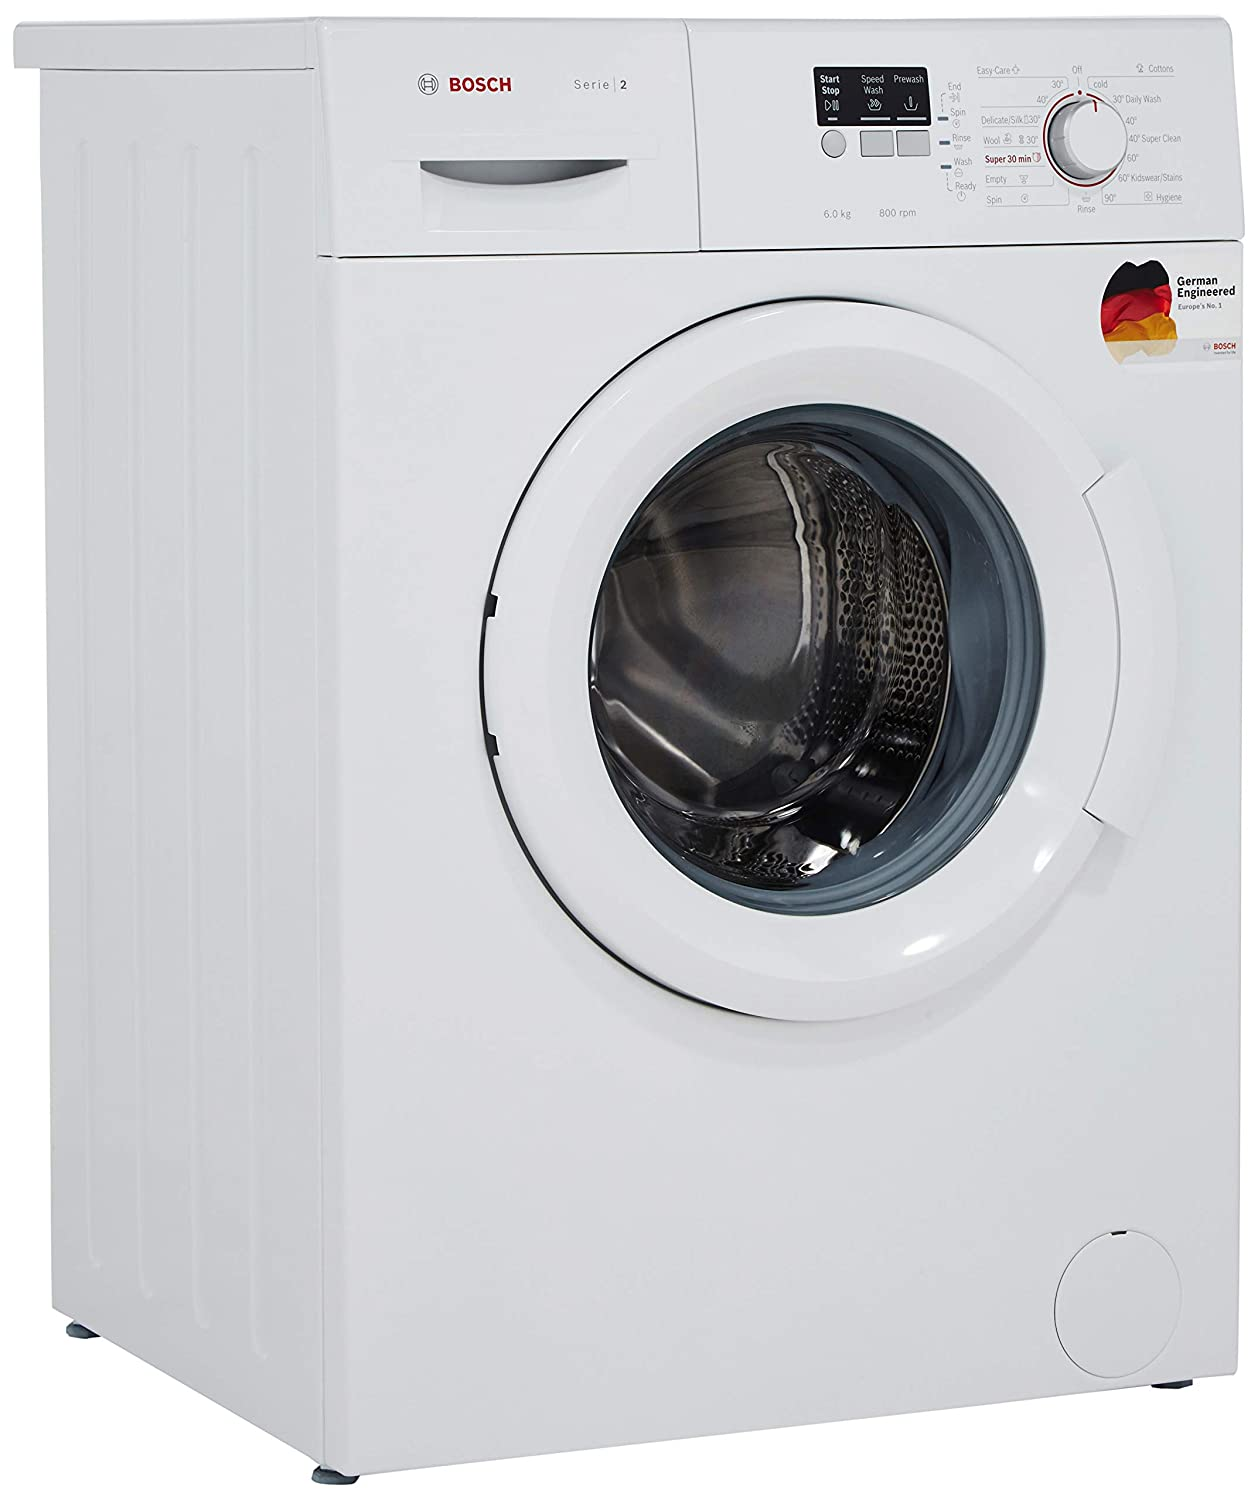 Bosch Classixx 5 washing machine: instructions for use, washing modes and reviews 3